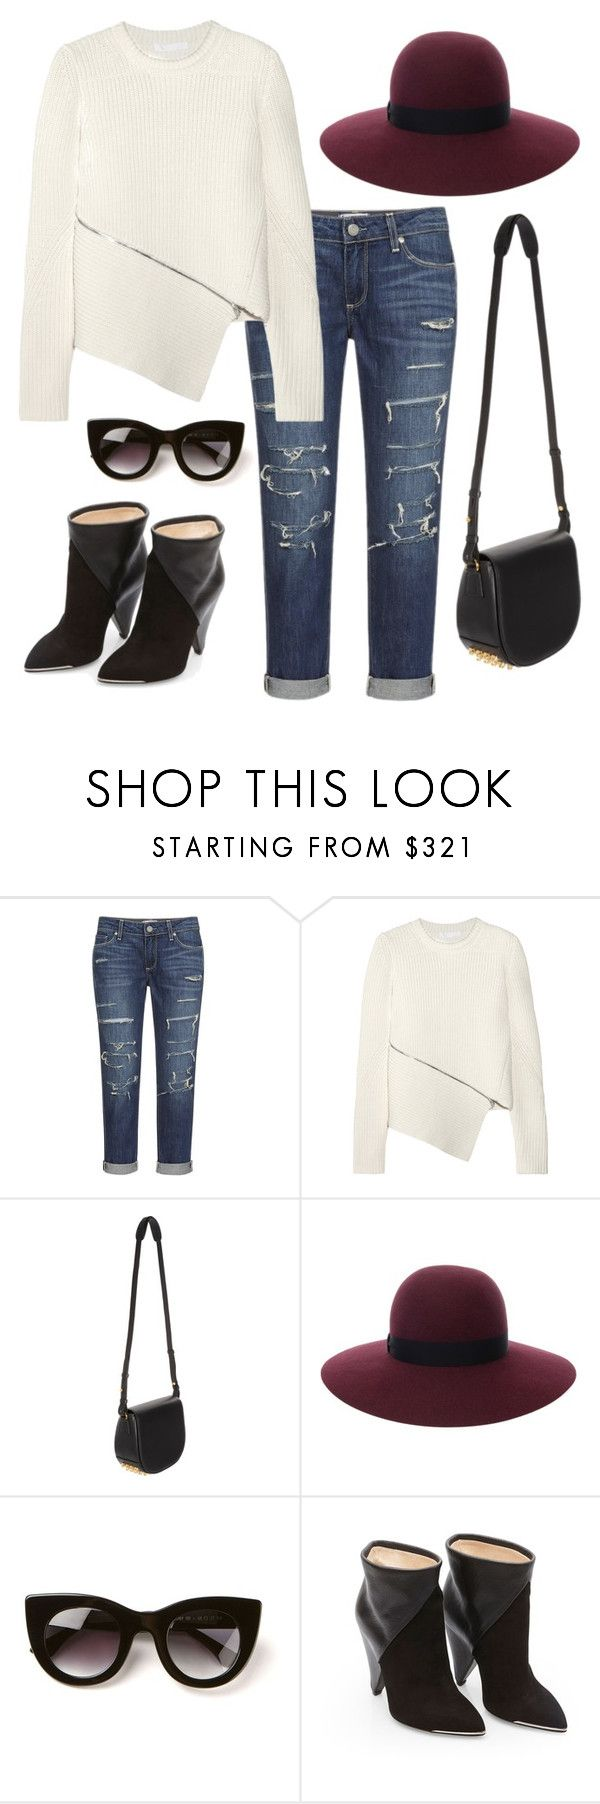 Alexander Wang Ribbed Sweater by missmelaniejane on Polyvore featuring Alexander Wang, Paige Denim, Lanvin and Thierry Lasry